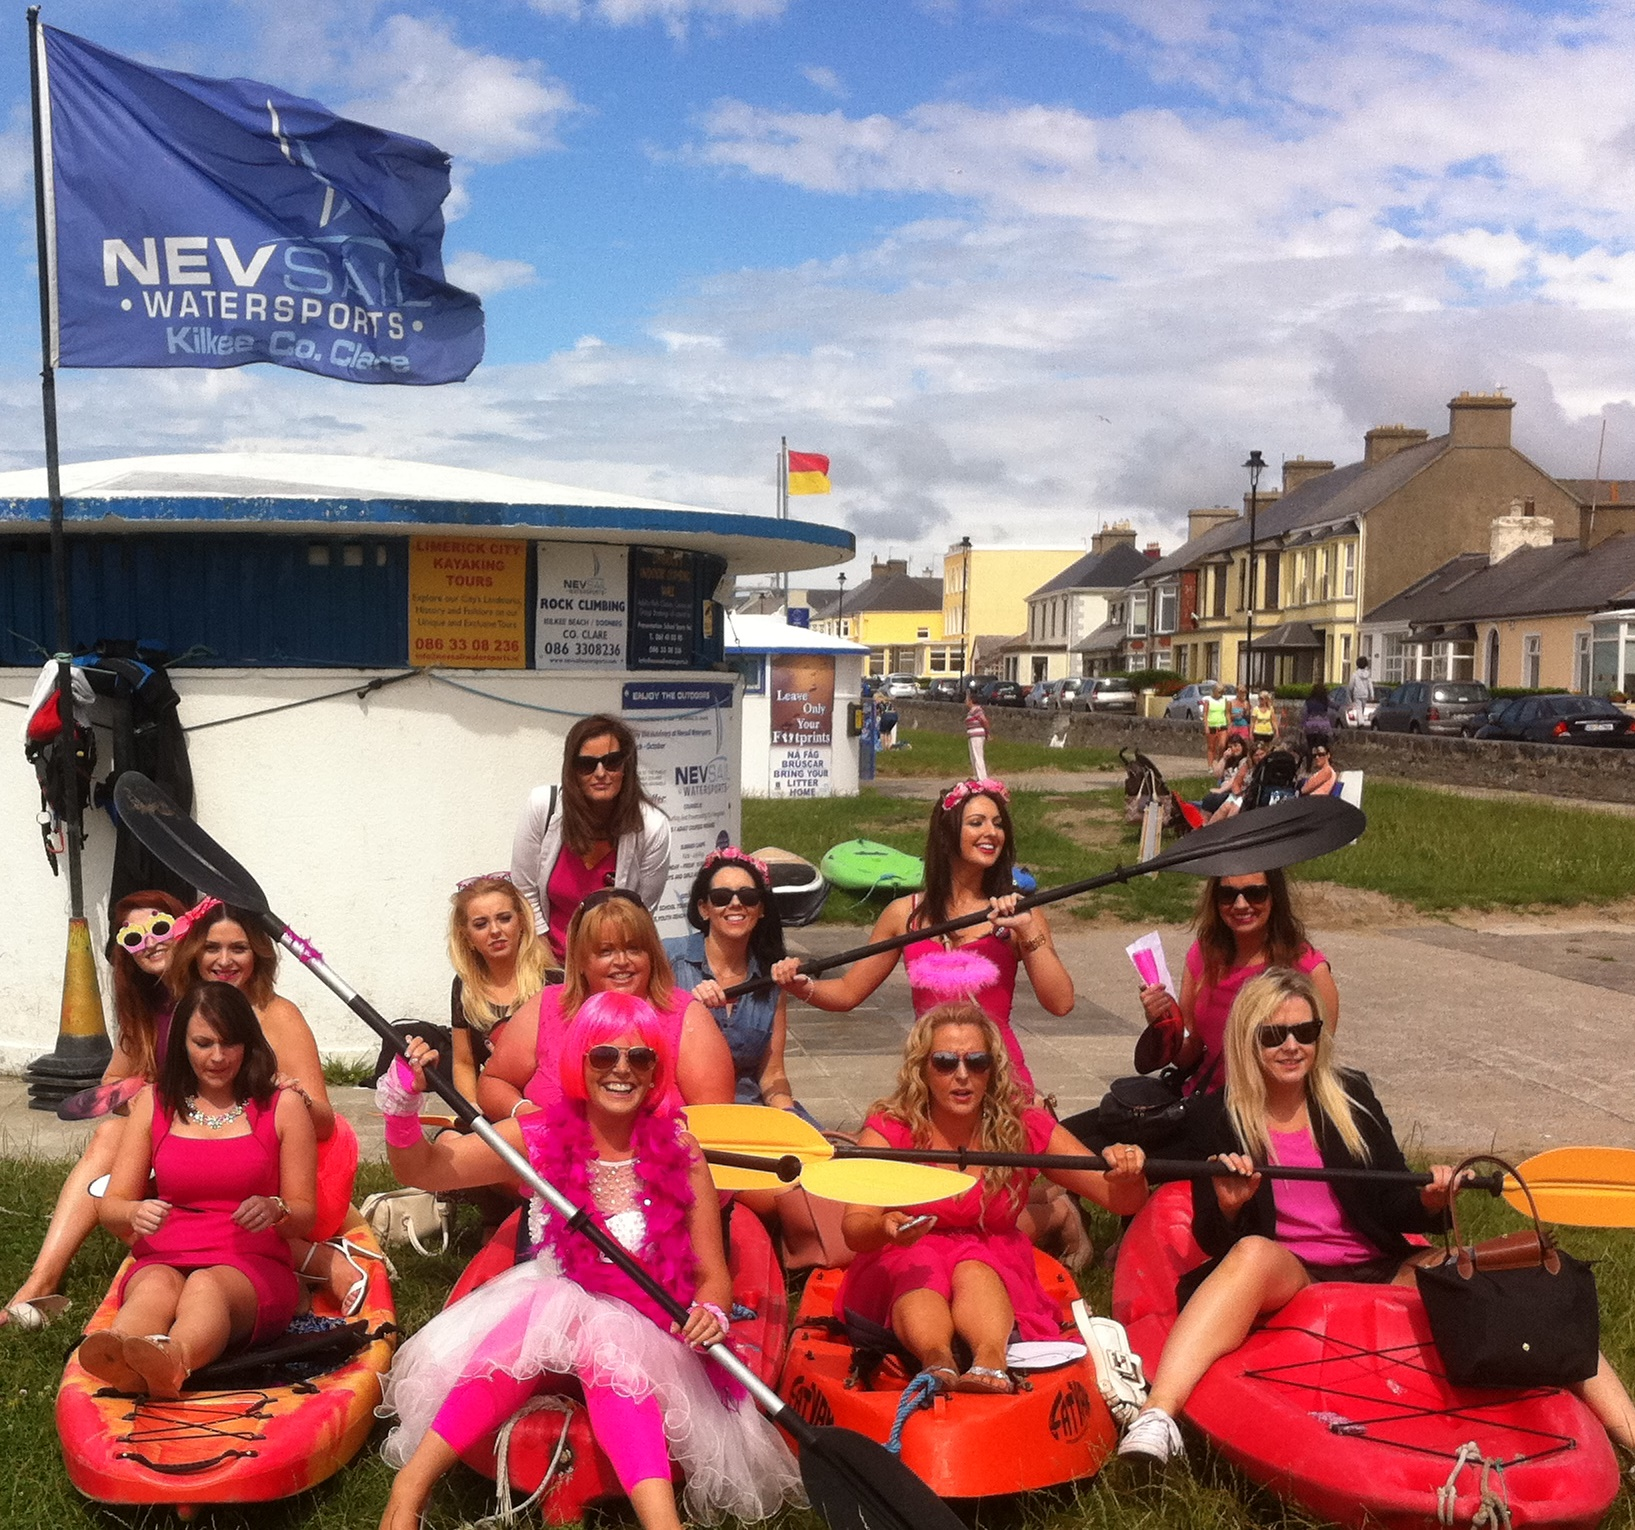 Hen night Team Building Activities with Nevsail in Kilkee, Clare